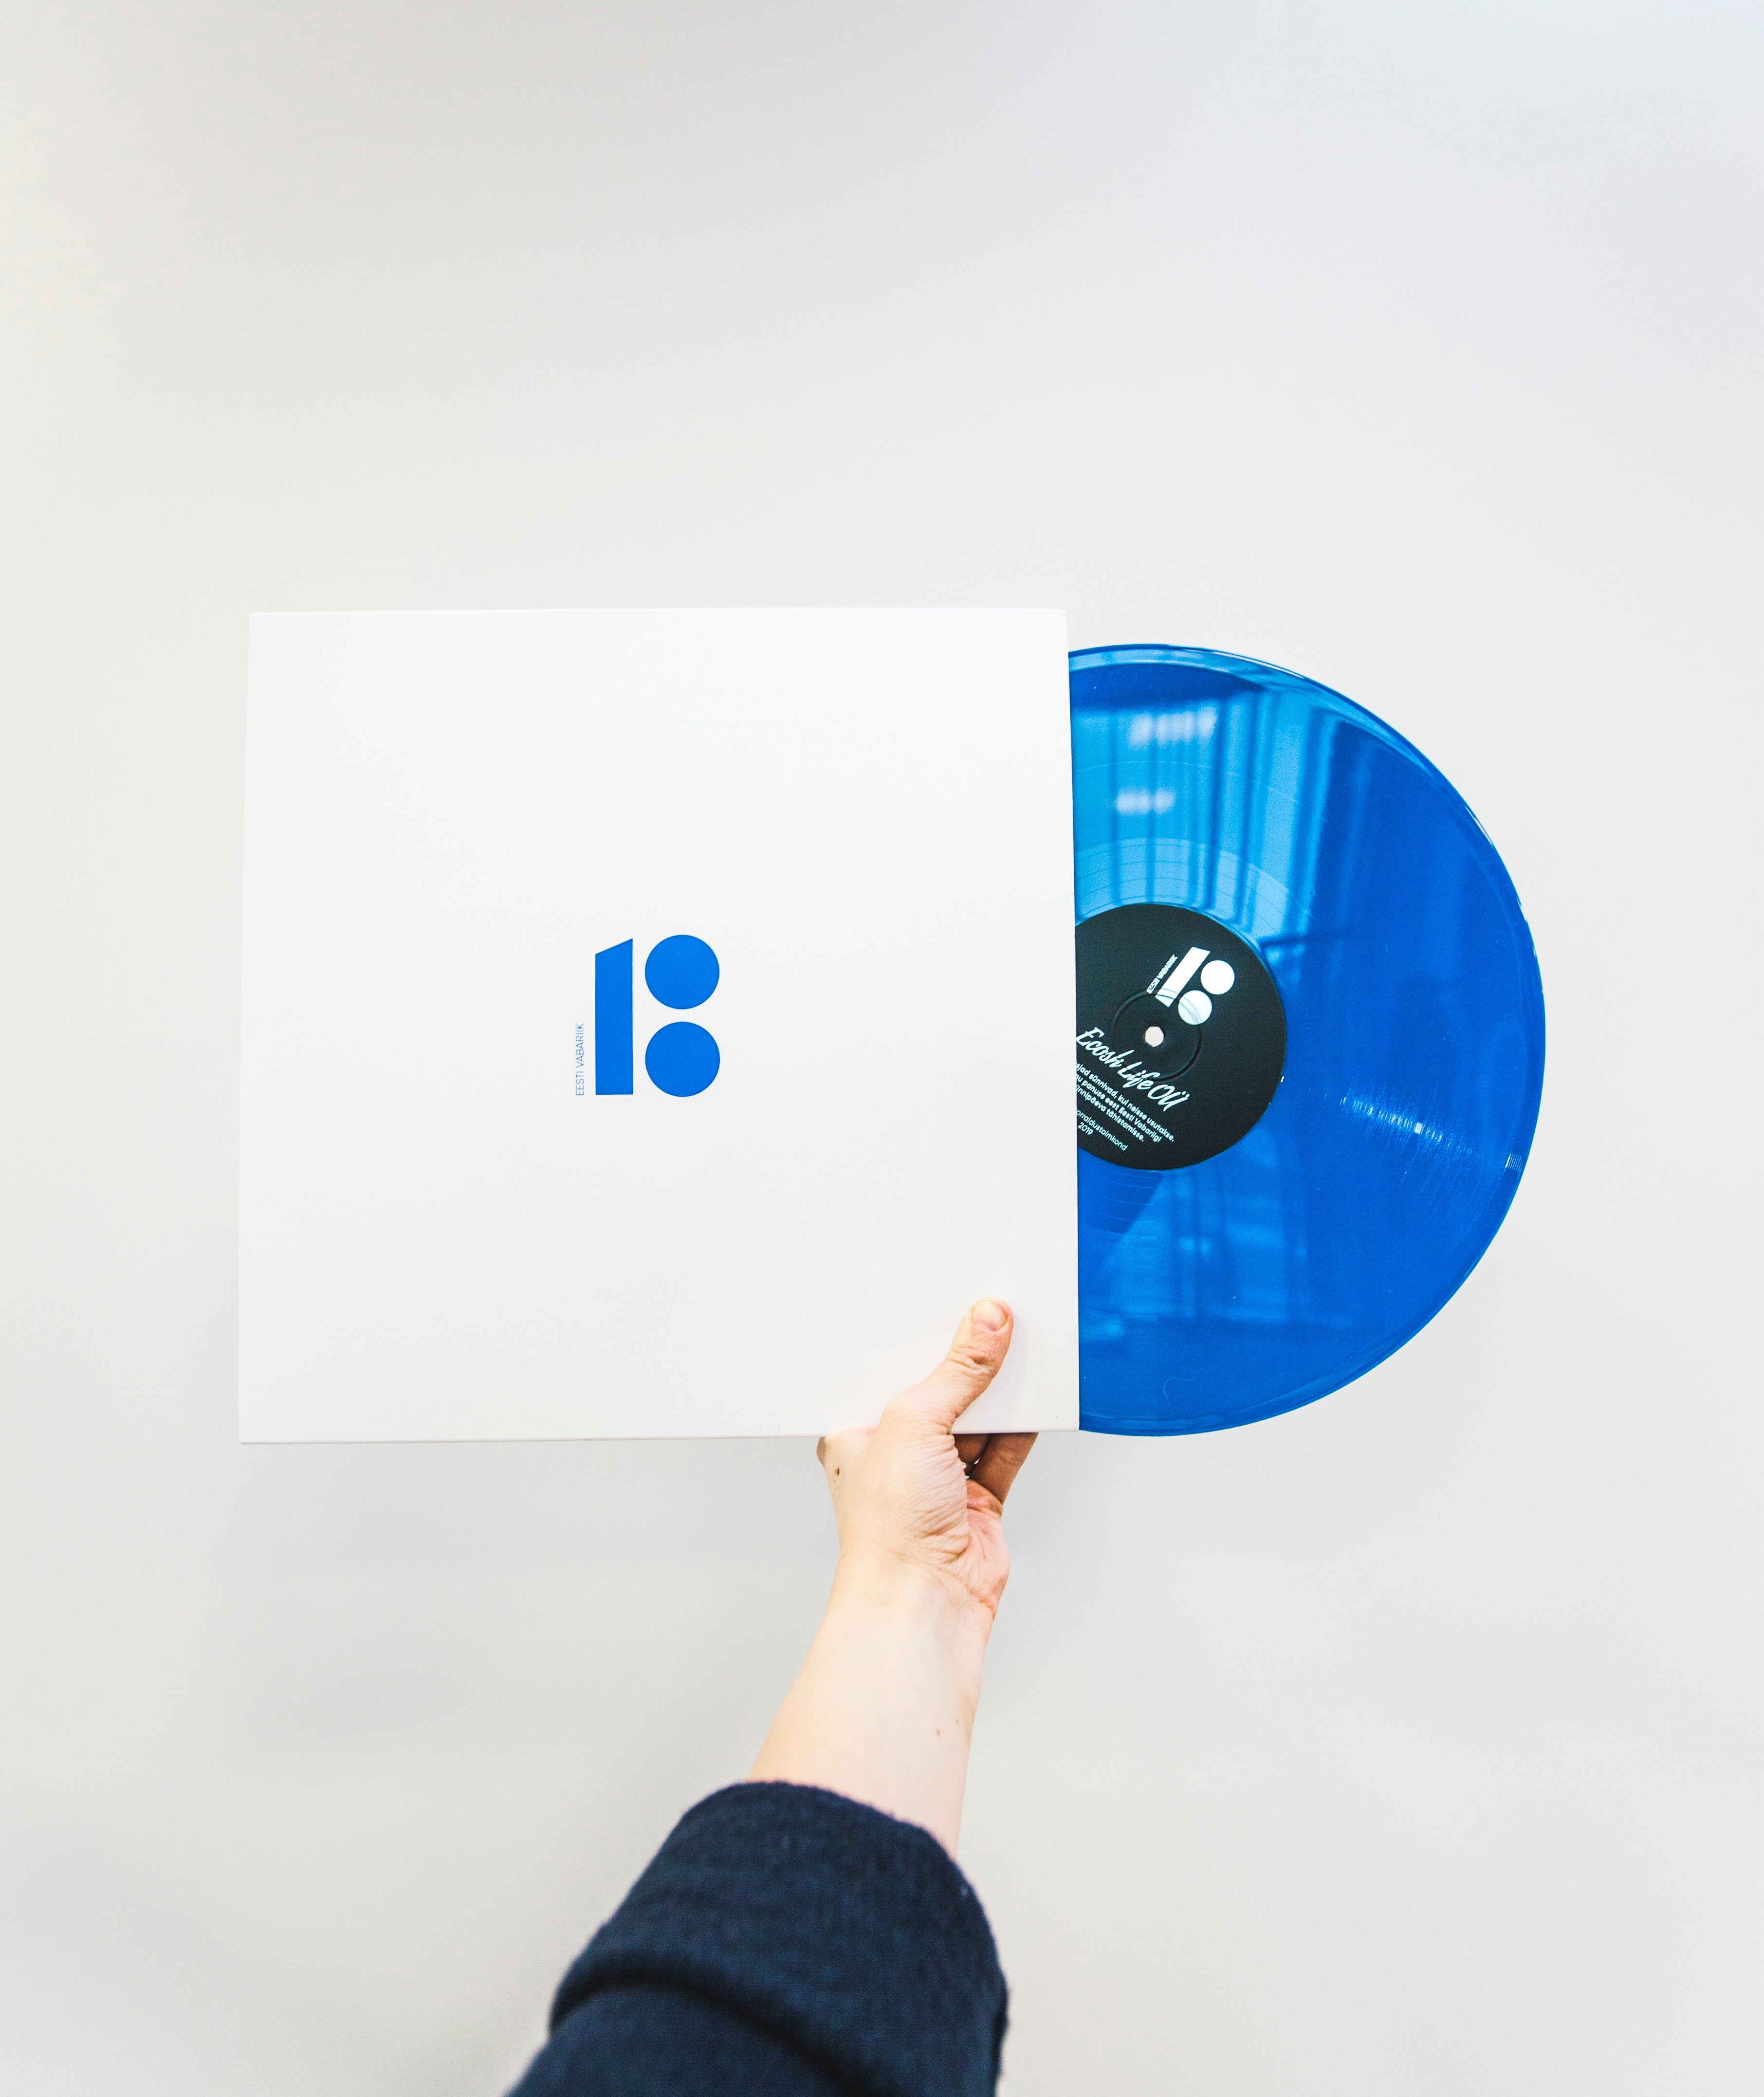 Minimalist photo of a person holding a blue vinyl record